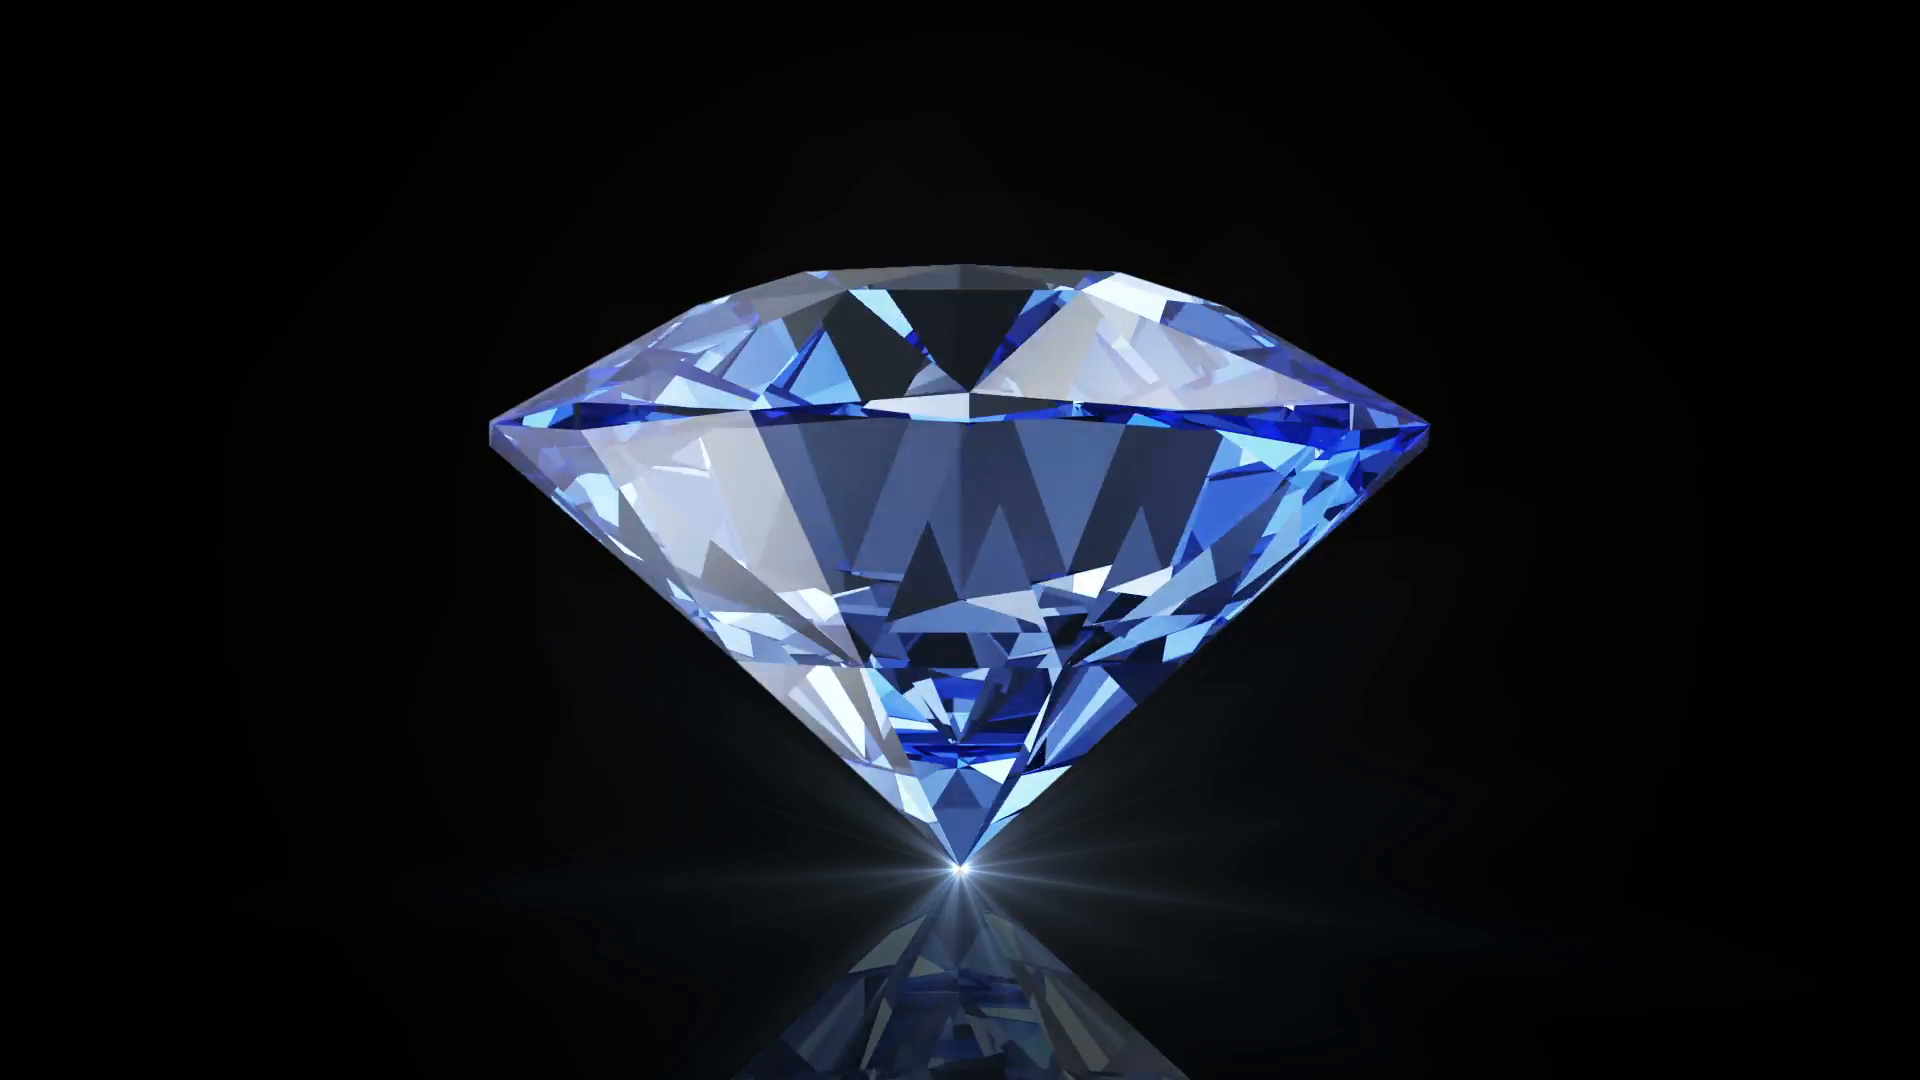 Animation Of Blue Diamond Rotation On Black Background With Glowing Rays Seamless Looping HQ Video